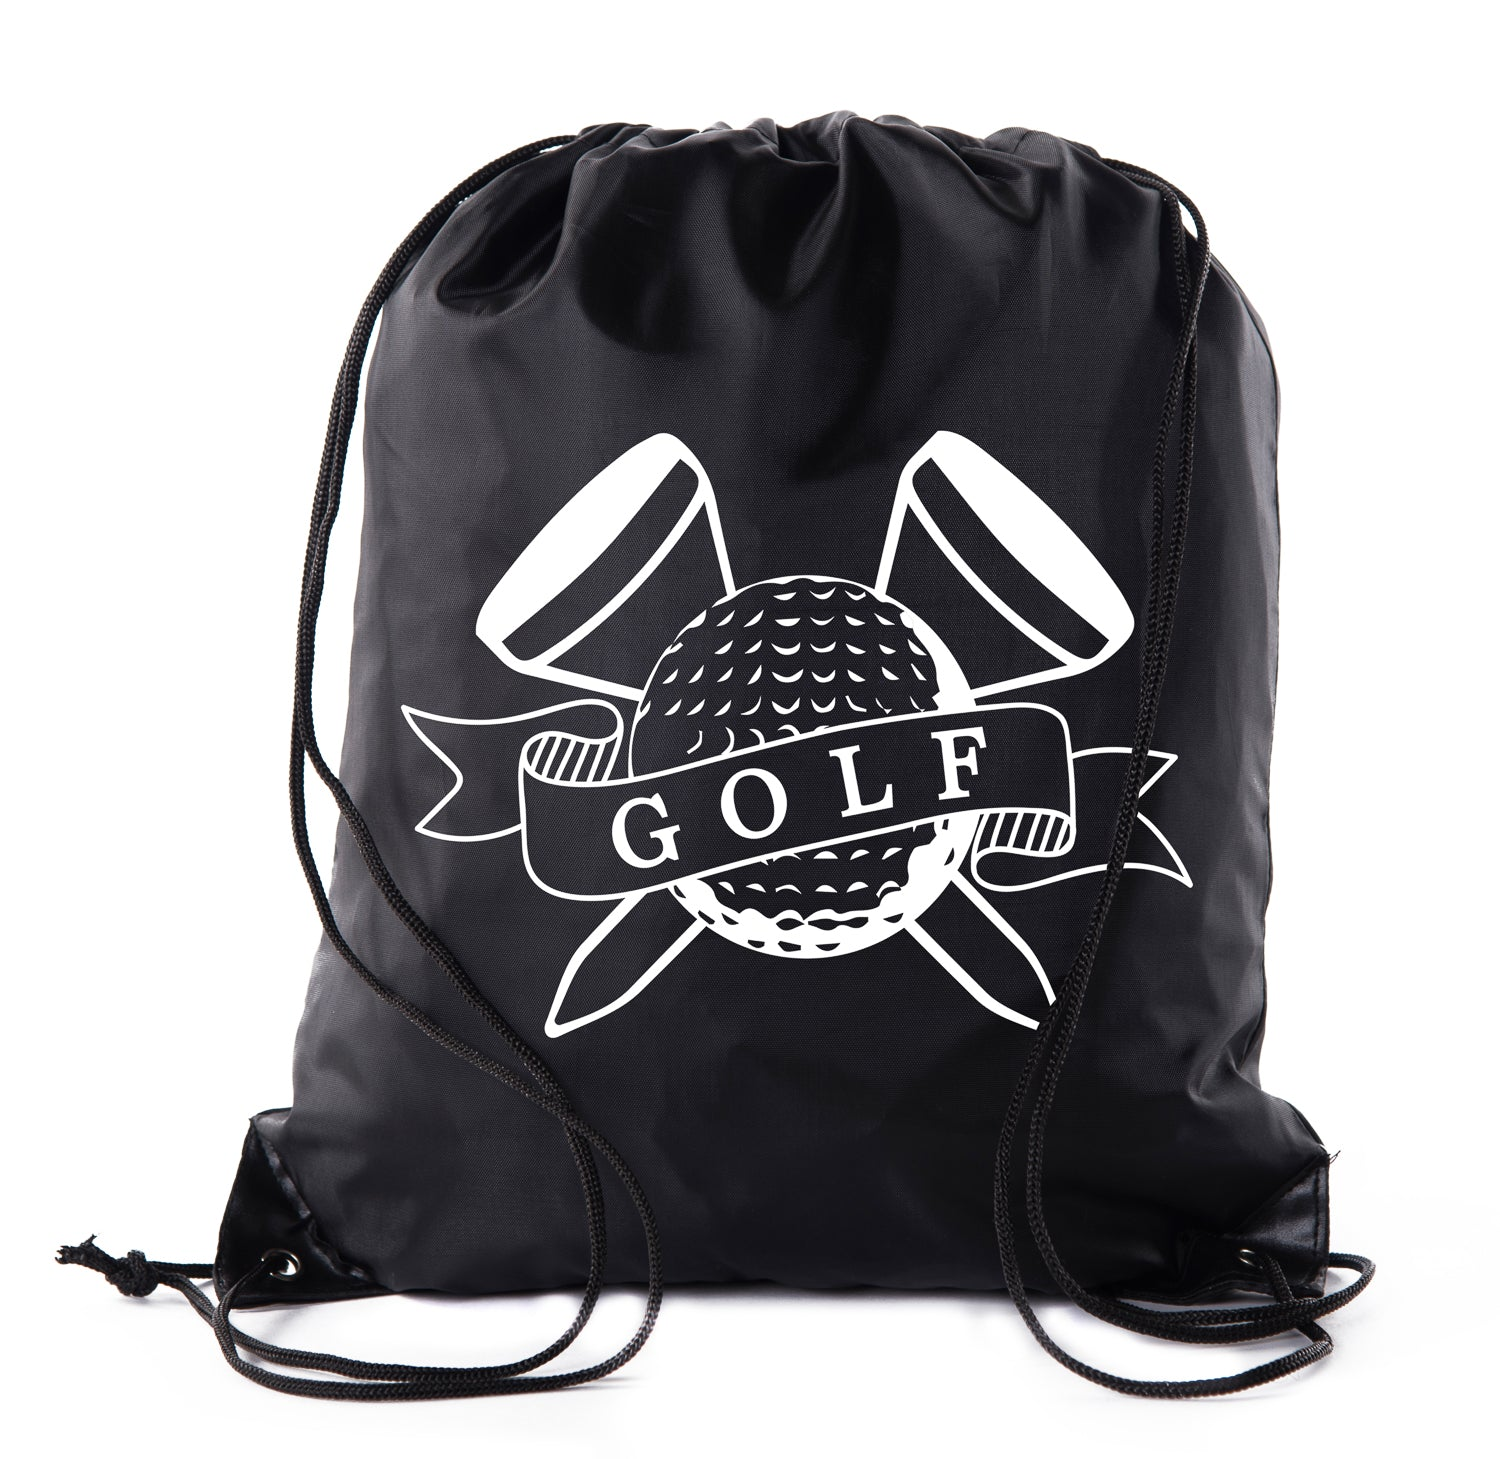 Accessory - Mato & Hash Golf Bags, Drawstring Golf Bags For Leagues, Parties And More! - Crest